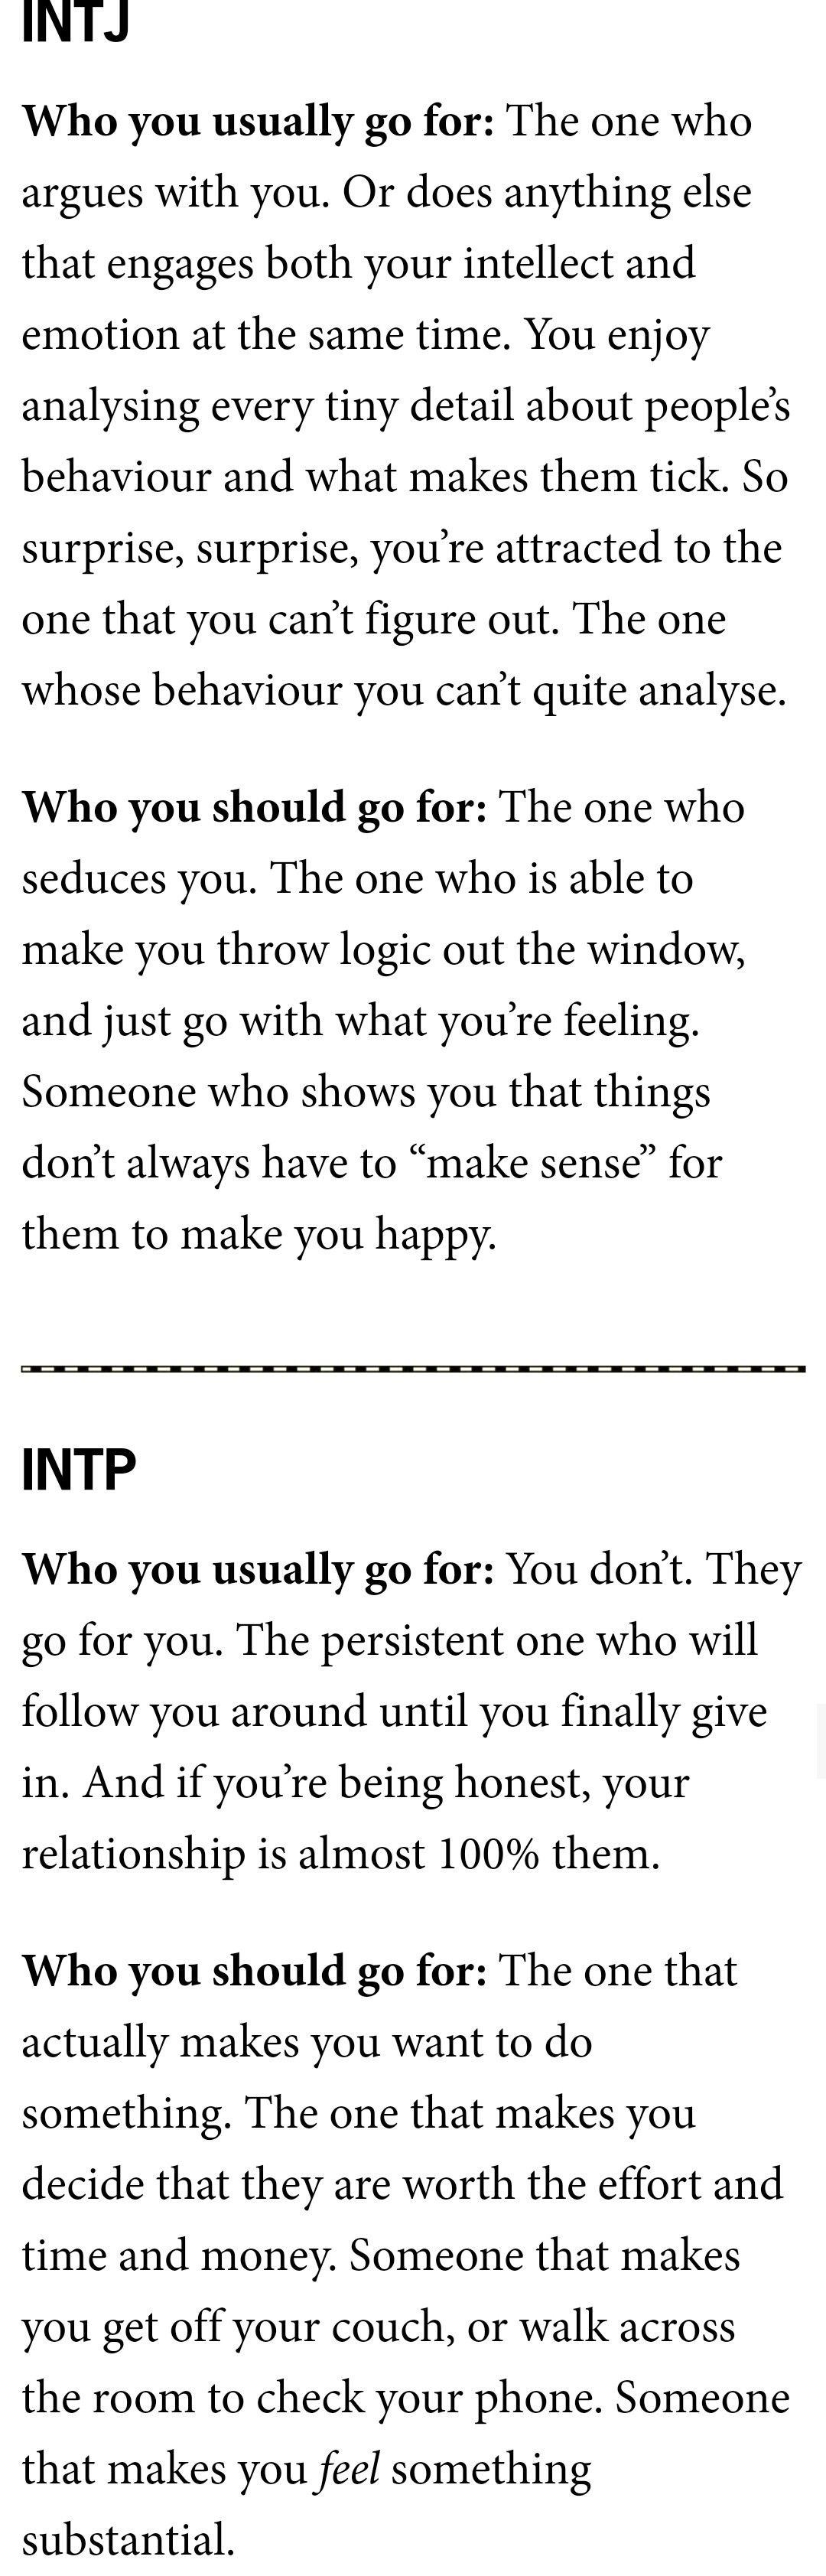 what personality type are you attracted to